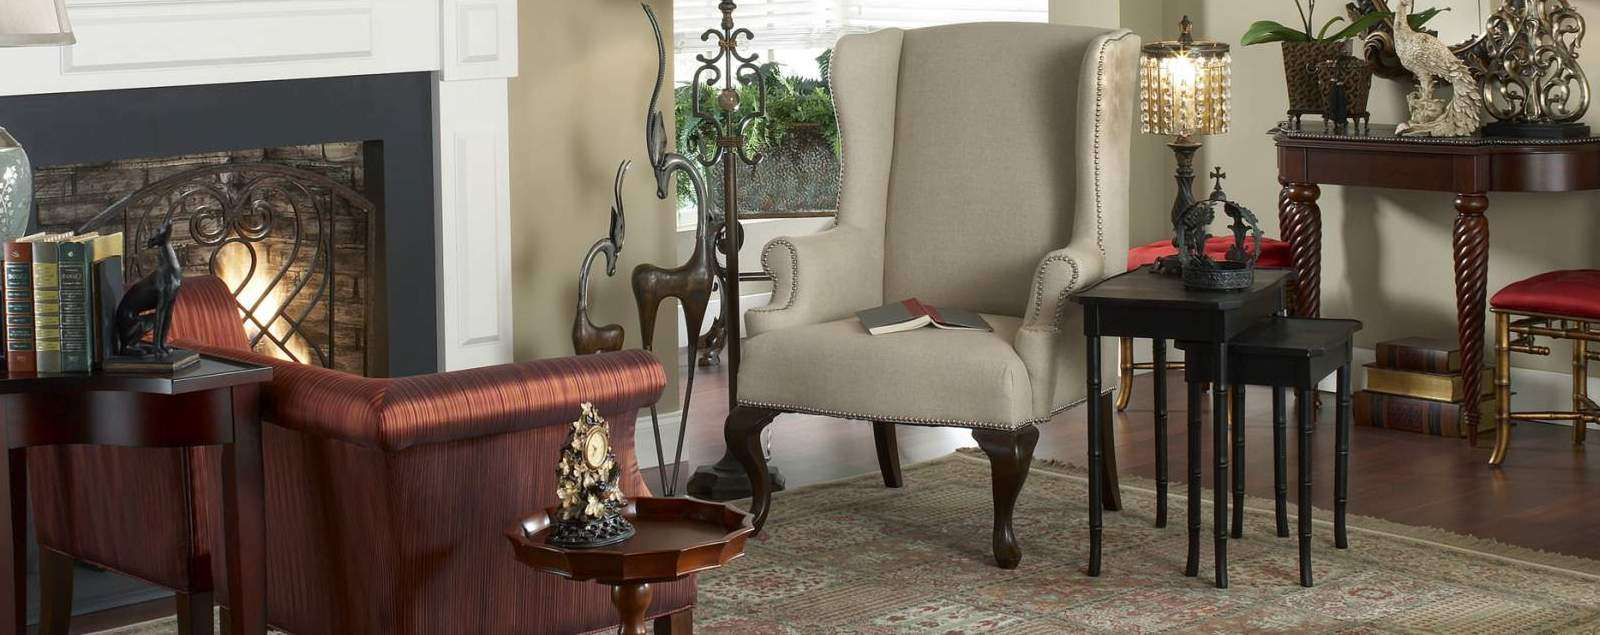 Furniture & Decor - Carts - End Tables - General Decor